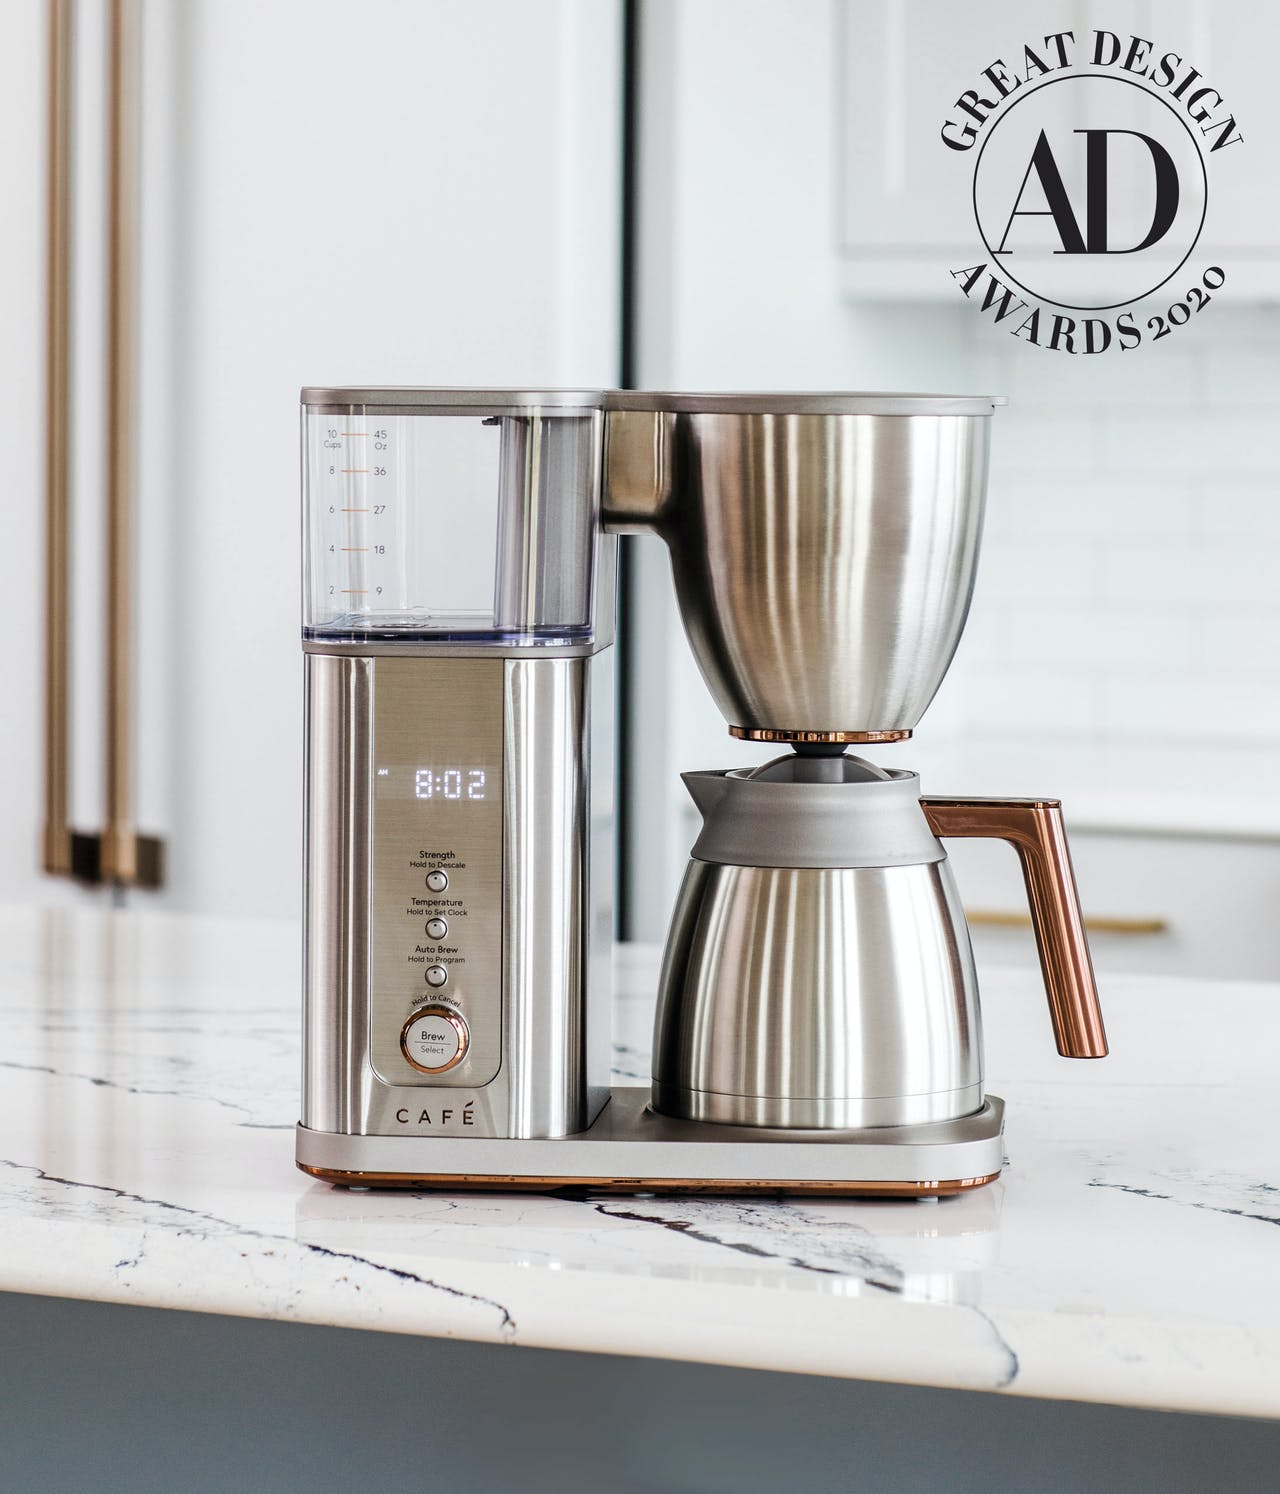 Stainless Coffee maker with Architectural Digest Great Design Award 2020